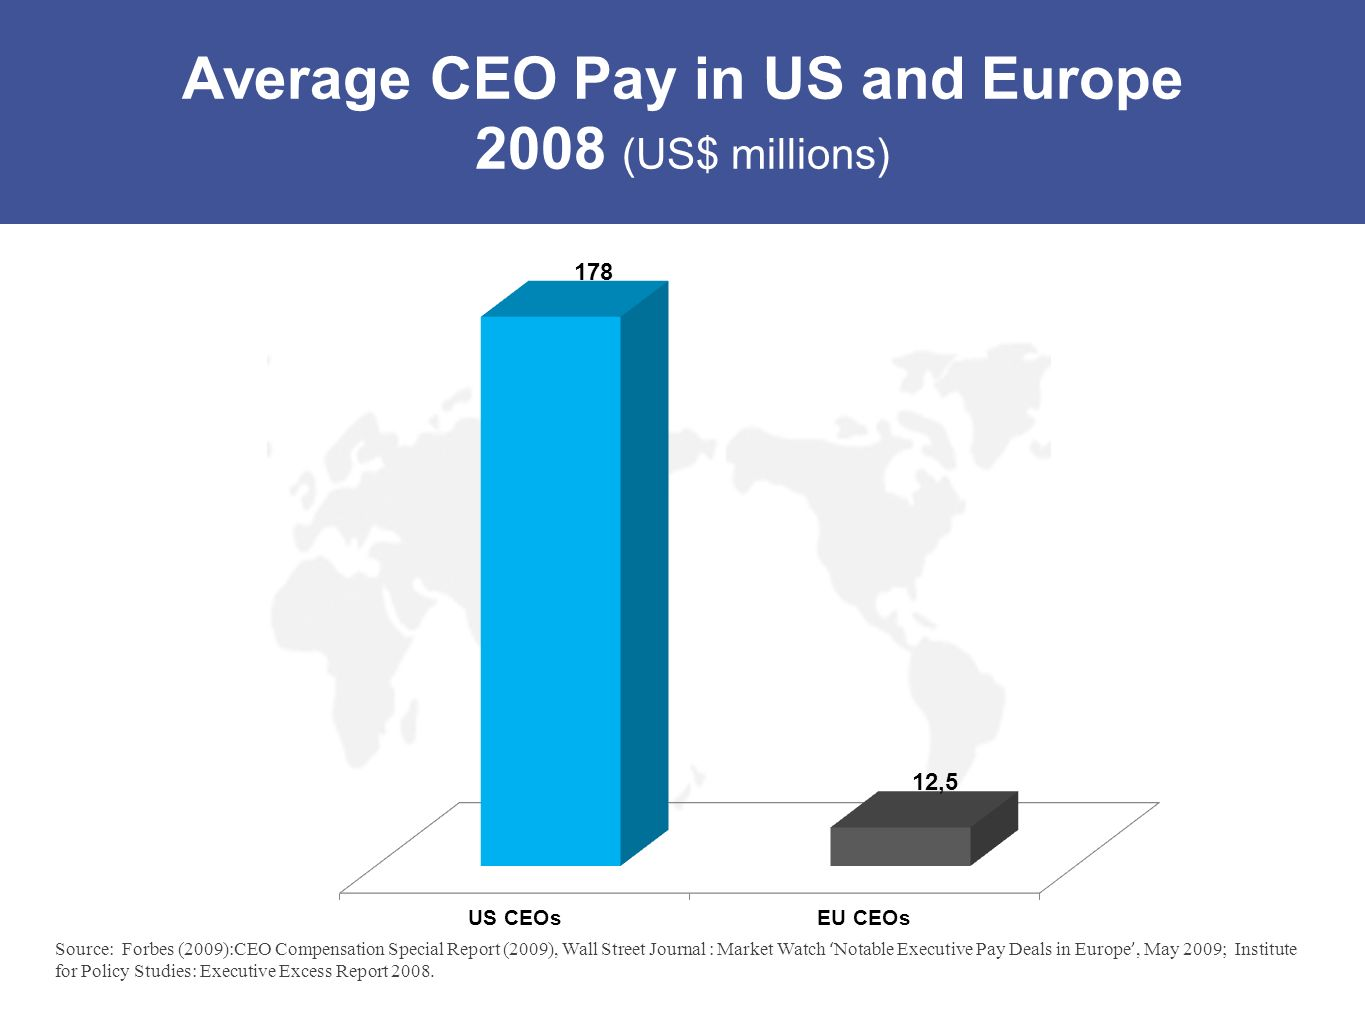 Average CEO Pay in US and Europe 2008 (US$ millions)